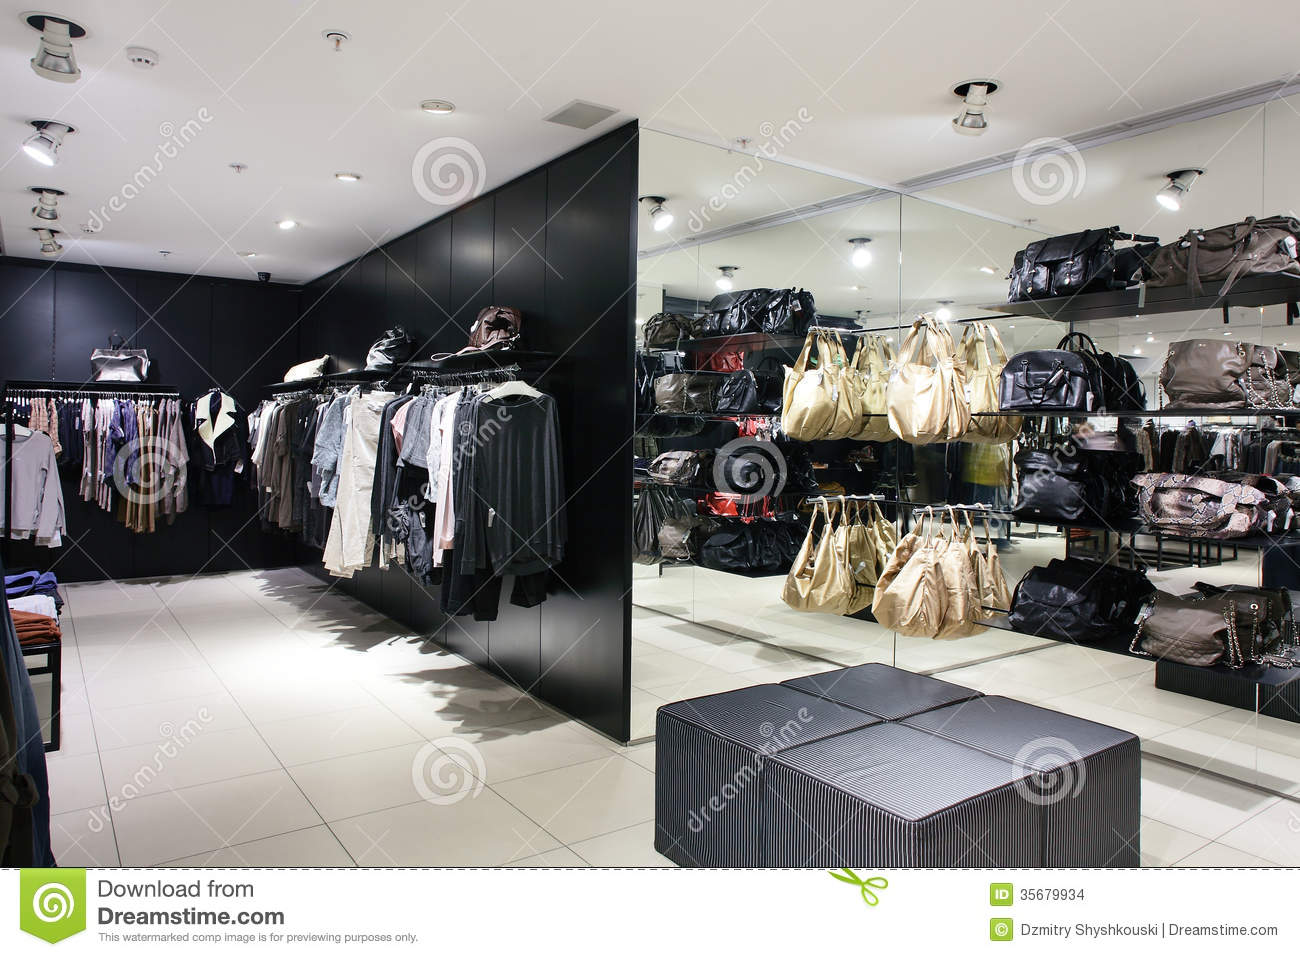 Collection clothing store. Women clothing stores